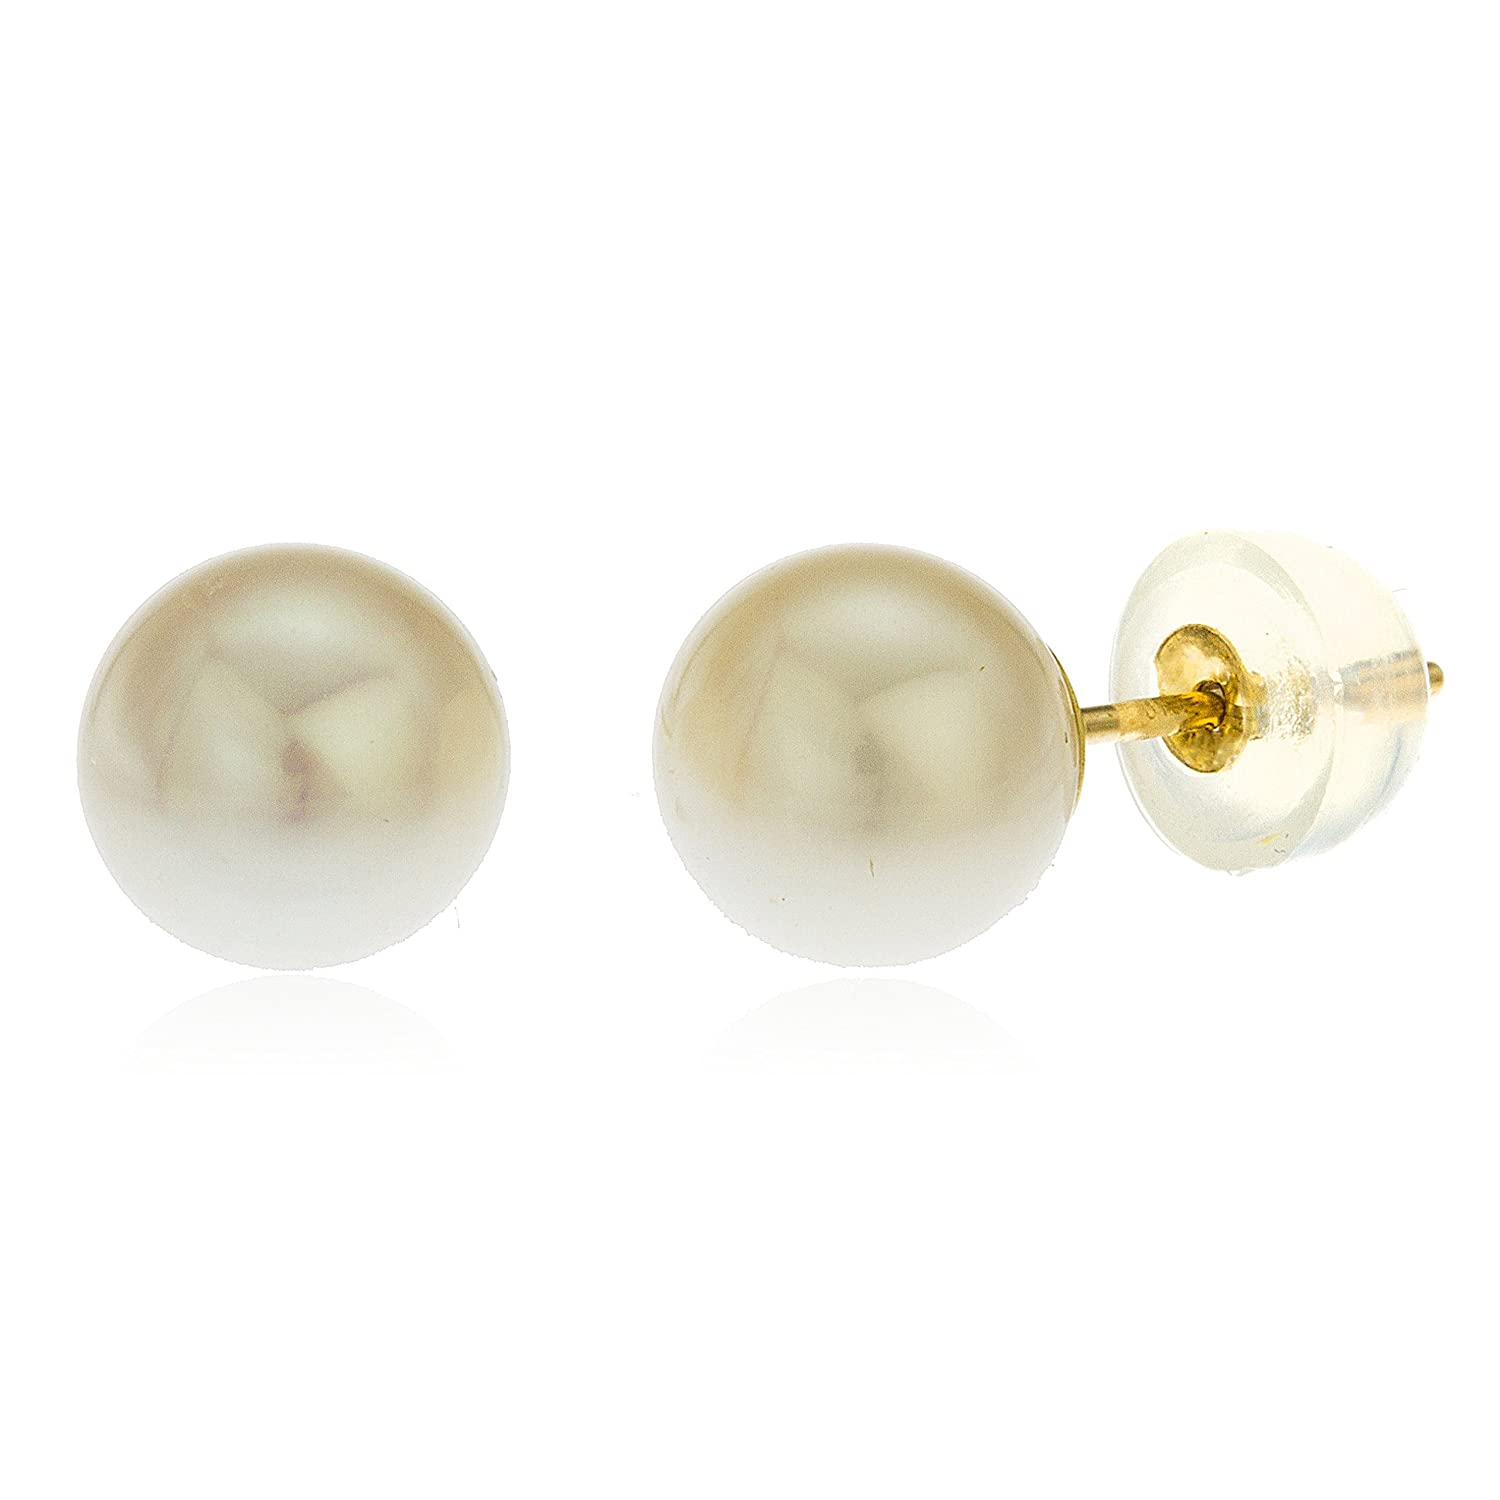 14k Yellow Gold 7mm Simulated Pearl Stud Earrings with Silicone Back GO-507